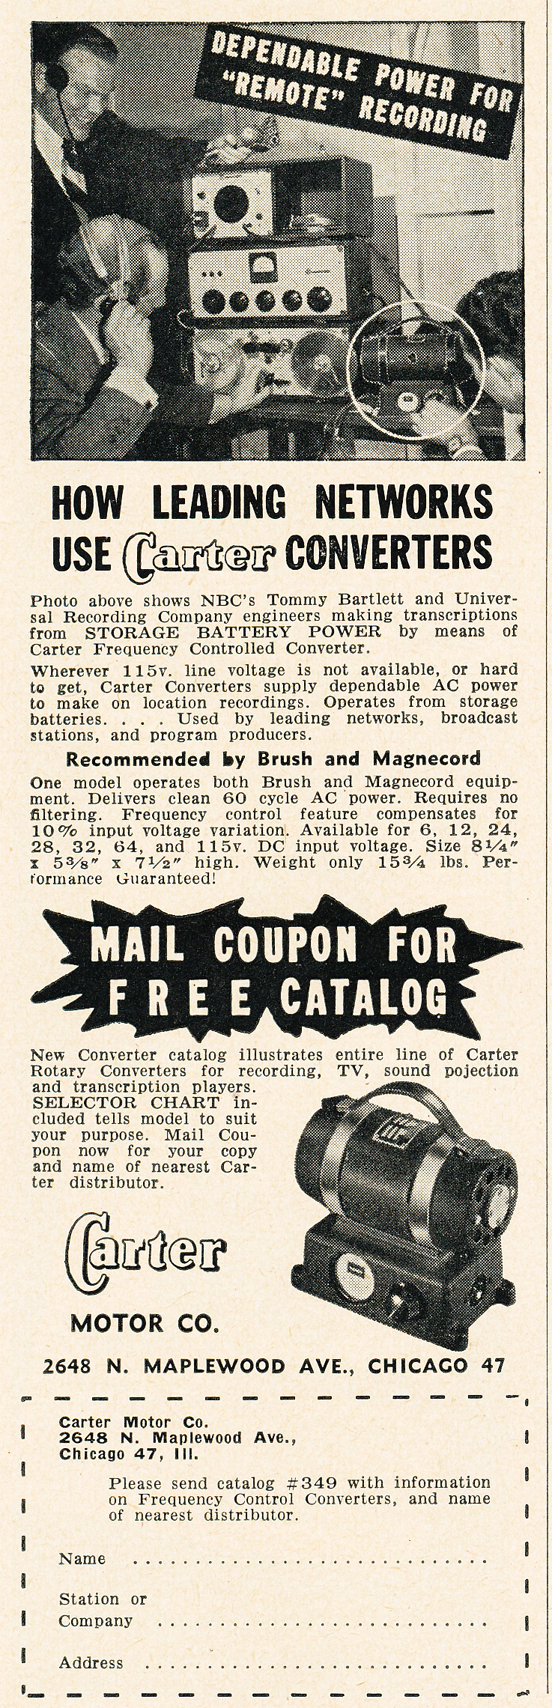 1950 ad for Carter power converters  ad in Reel2ReelTexas.com's vintage recording collection